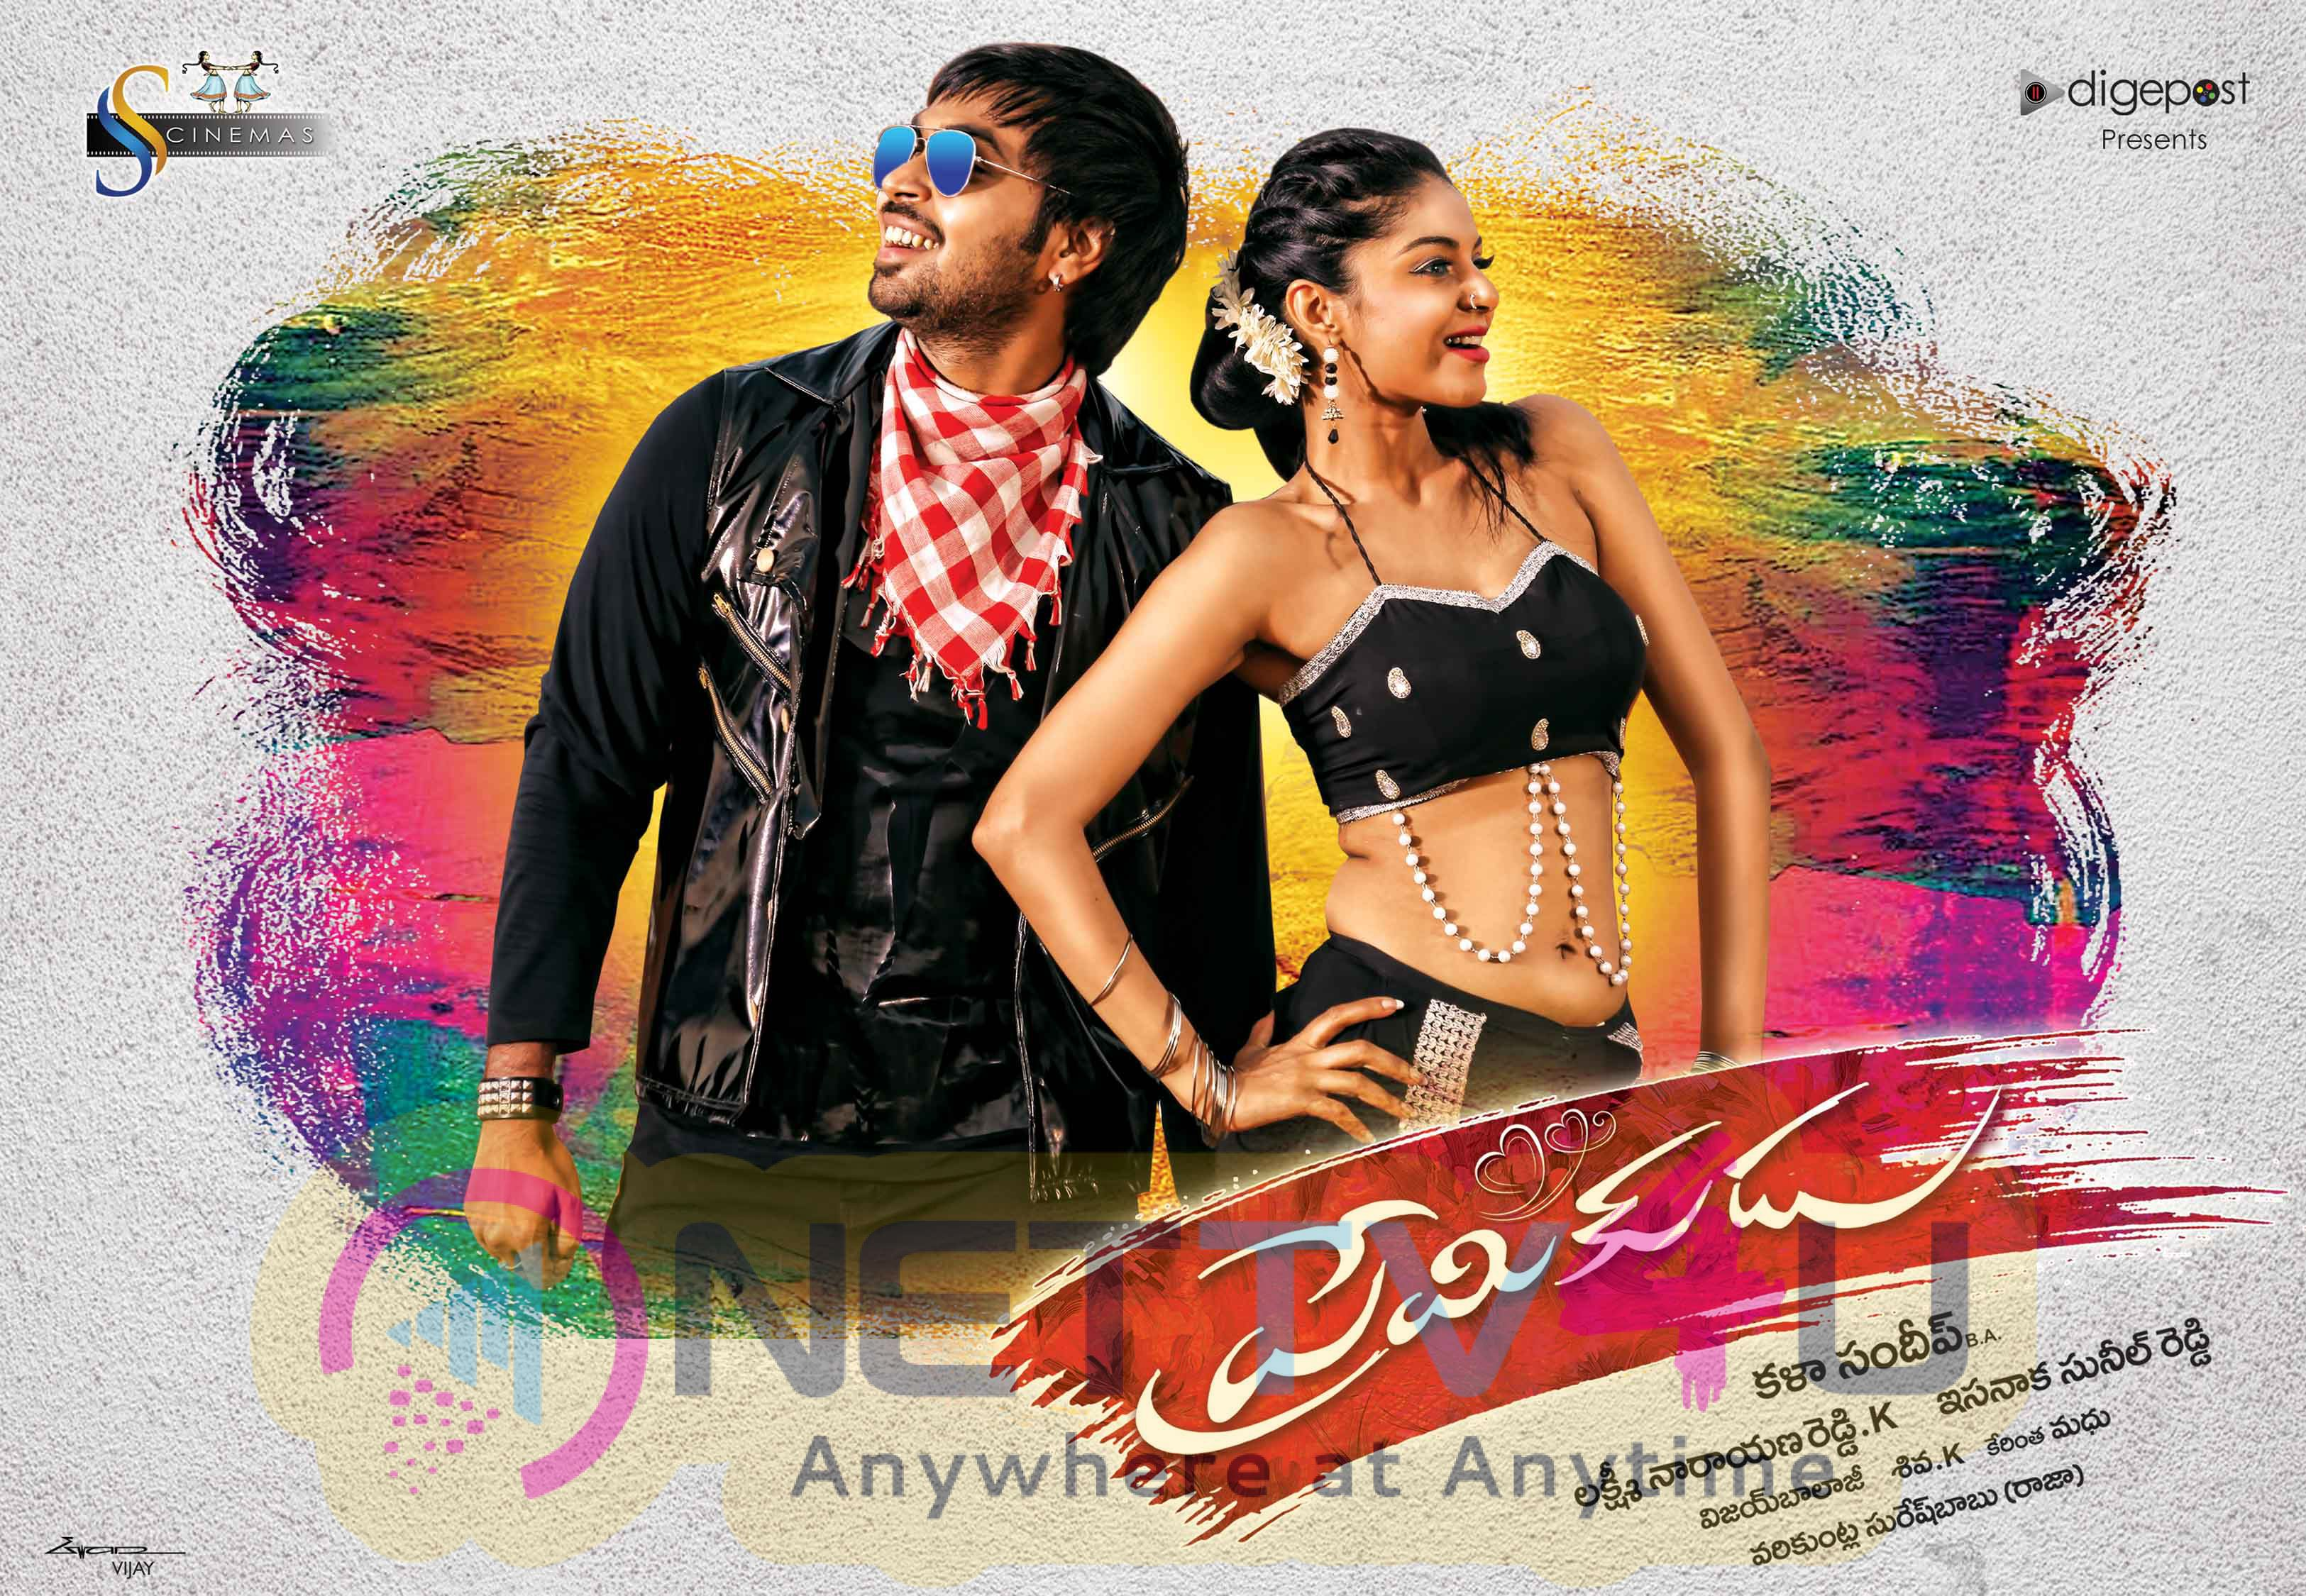 Telugu Movie Premikudu Latest New Poster | Nettv4u.com